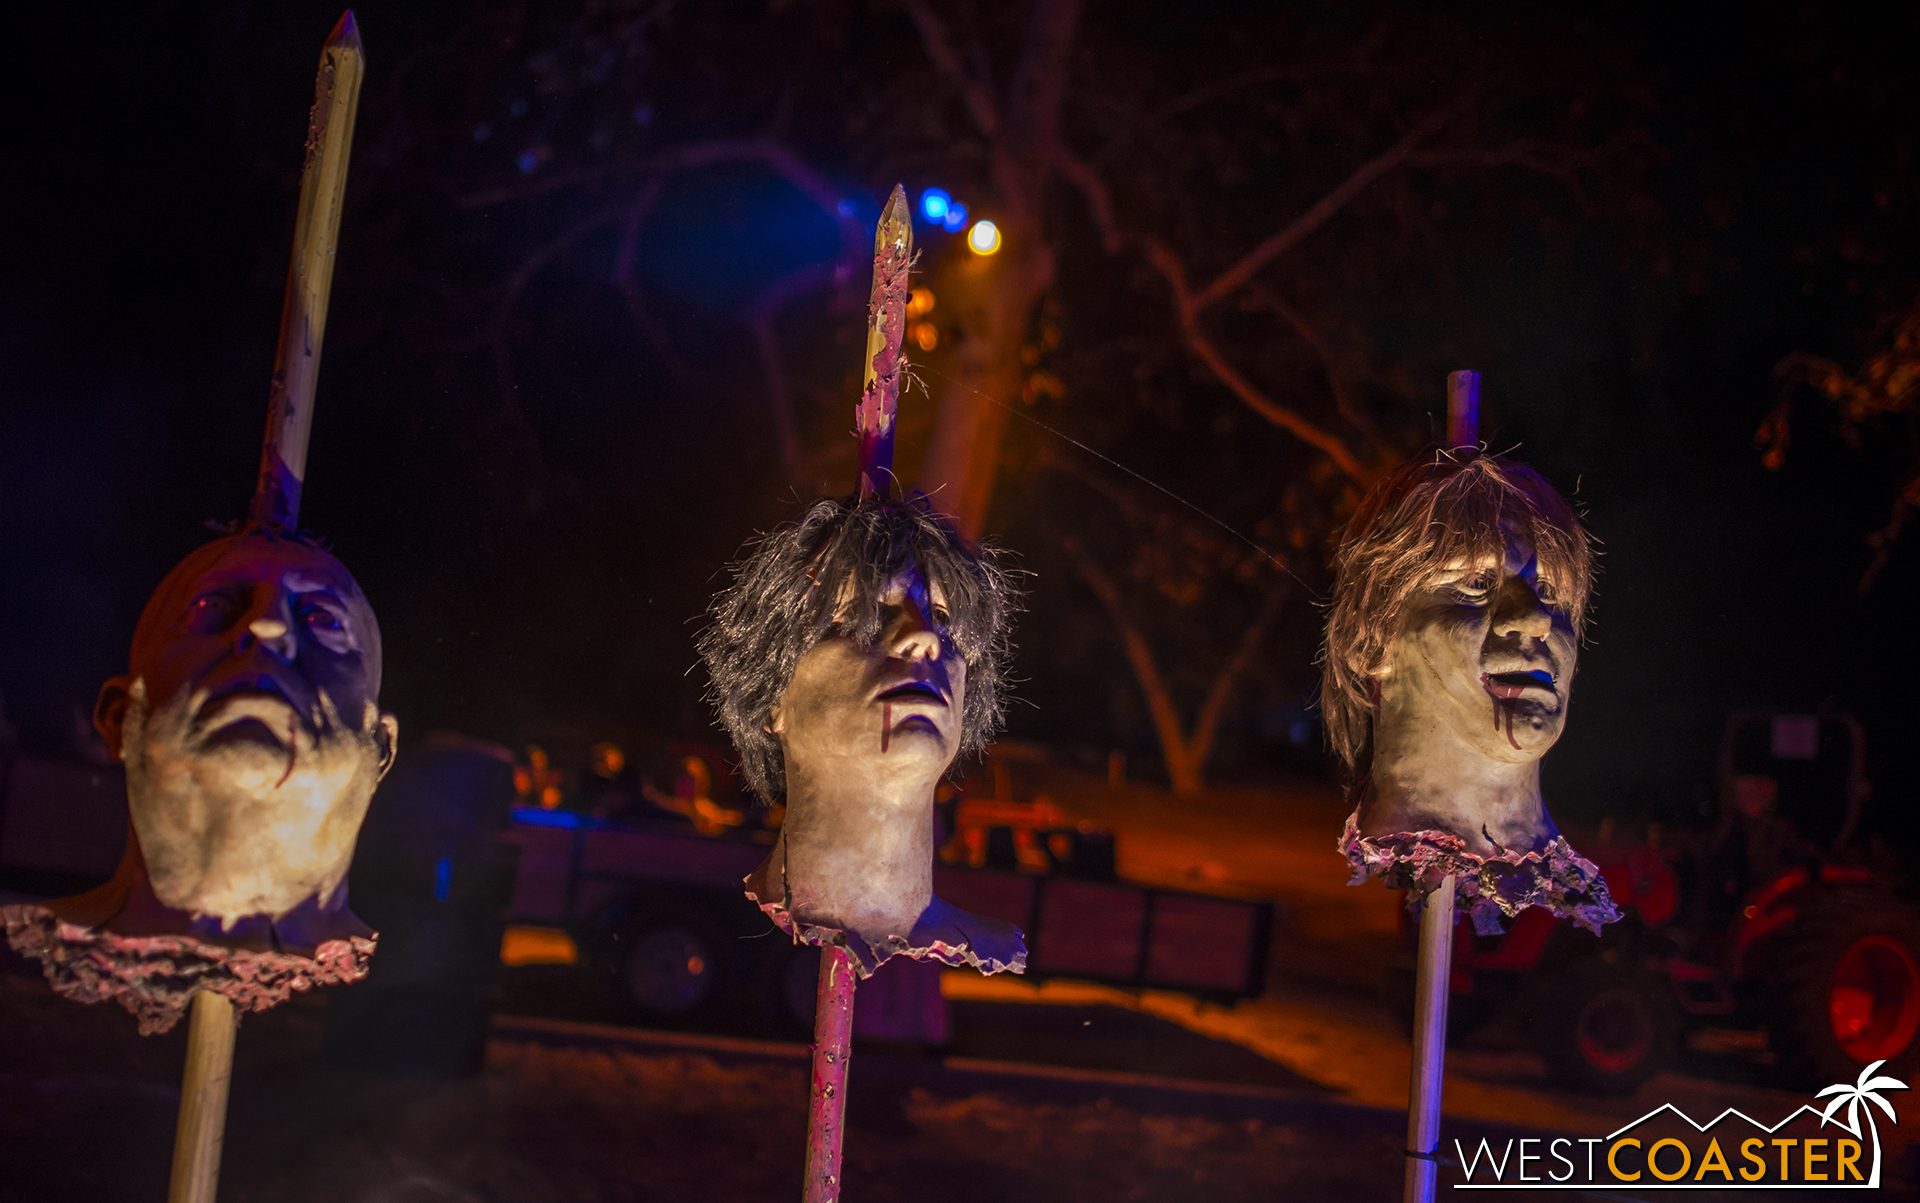 Those waiting in line may be serenaded by these singing heads on pikes.  Nice to see them still here.